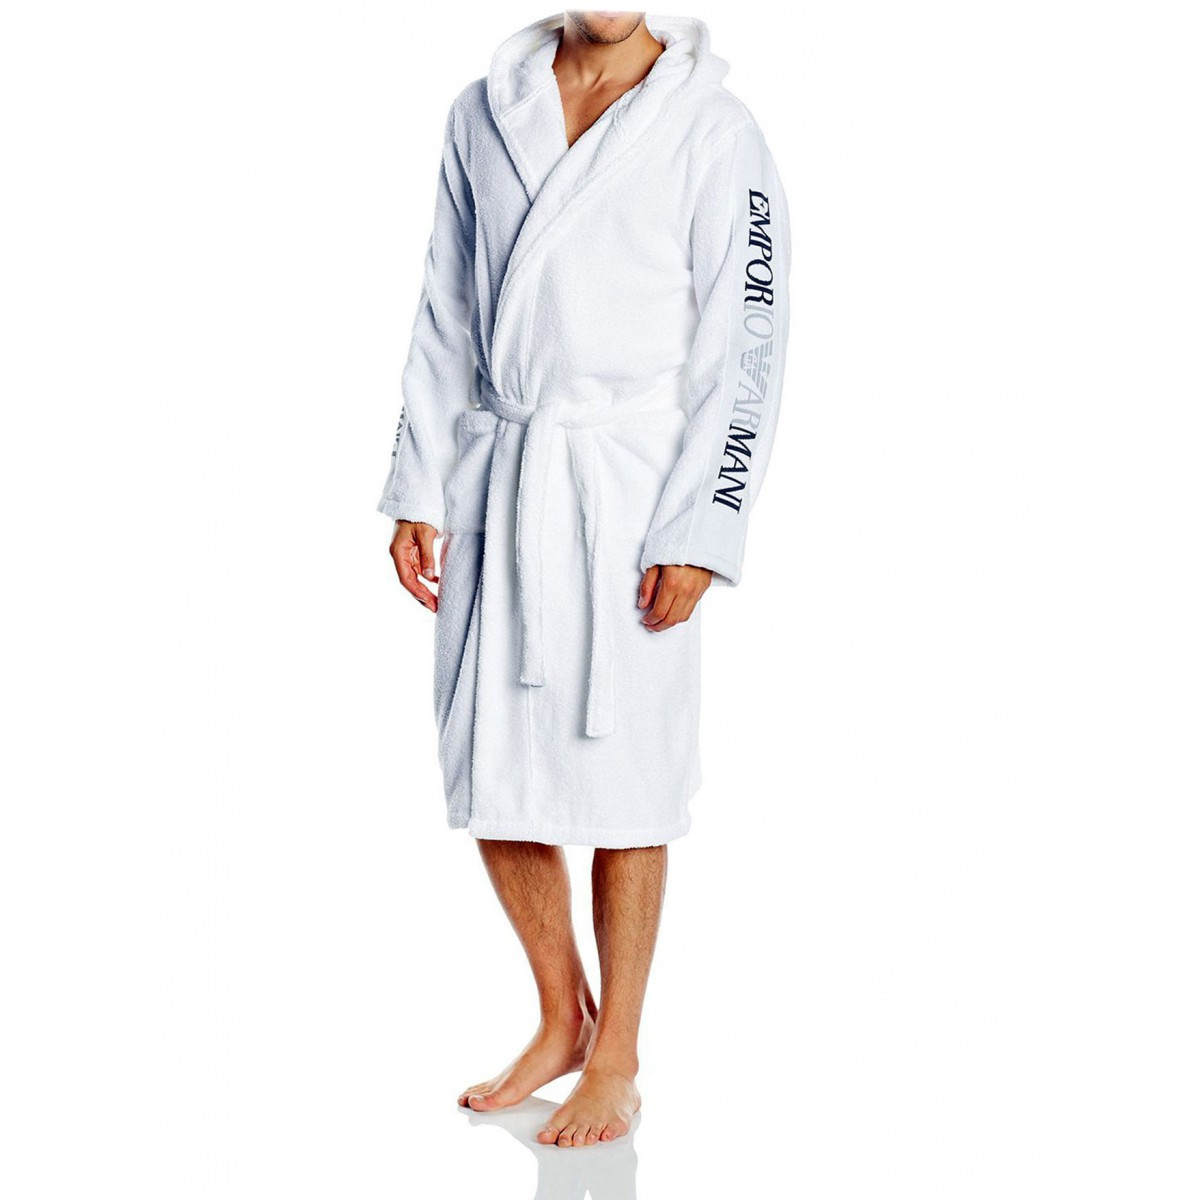 peignoir homme avec capuche quelques liens utiles fine adidas robe 3stripes ao0064 men men 39. Black Bedroom Furniture Sets. Home Design Ideas